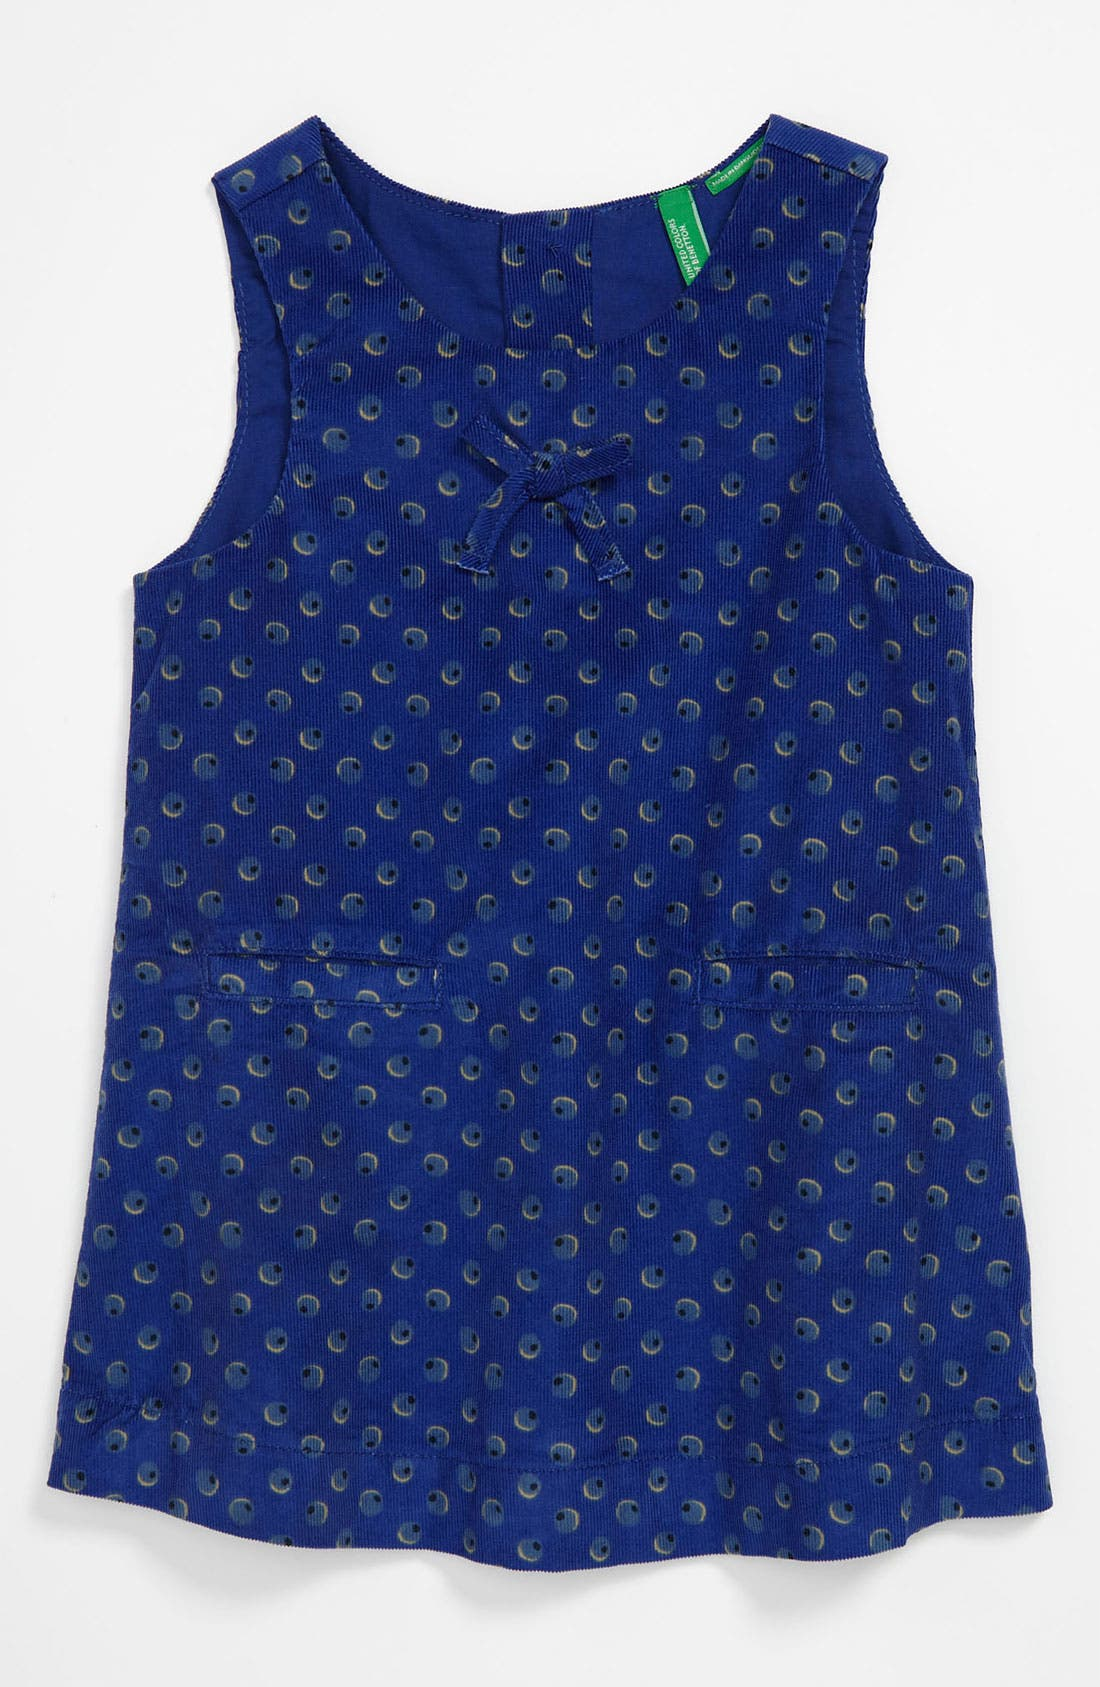 Alternate Image 1 Selected - United Colors of Benetton Kids Corduroy Dress (Toddler)